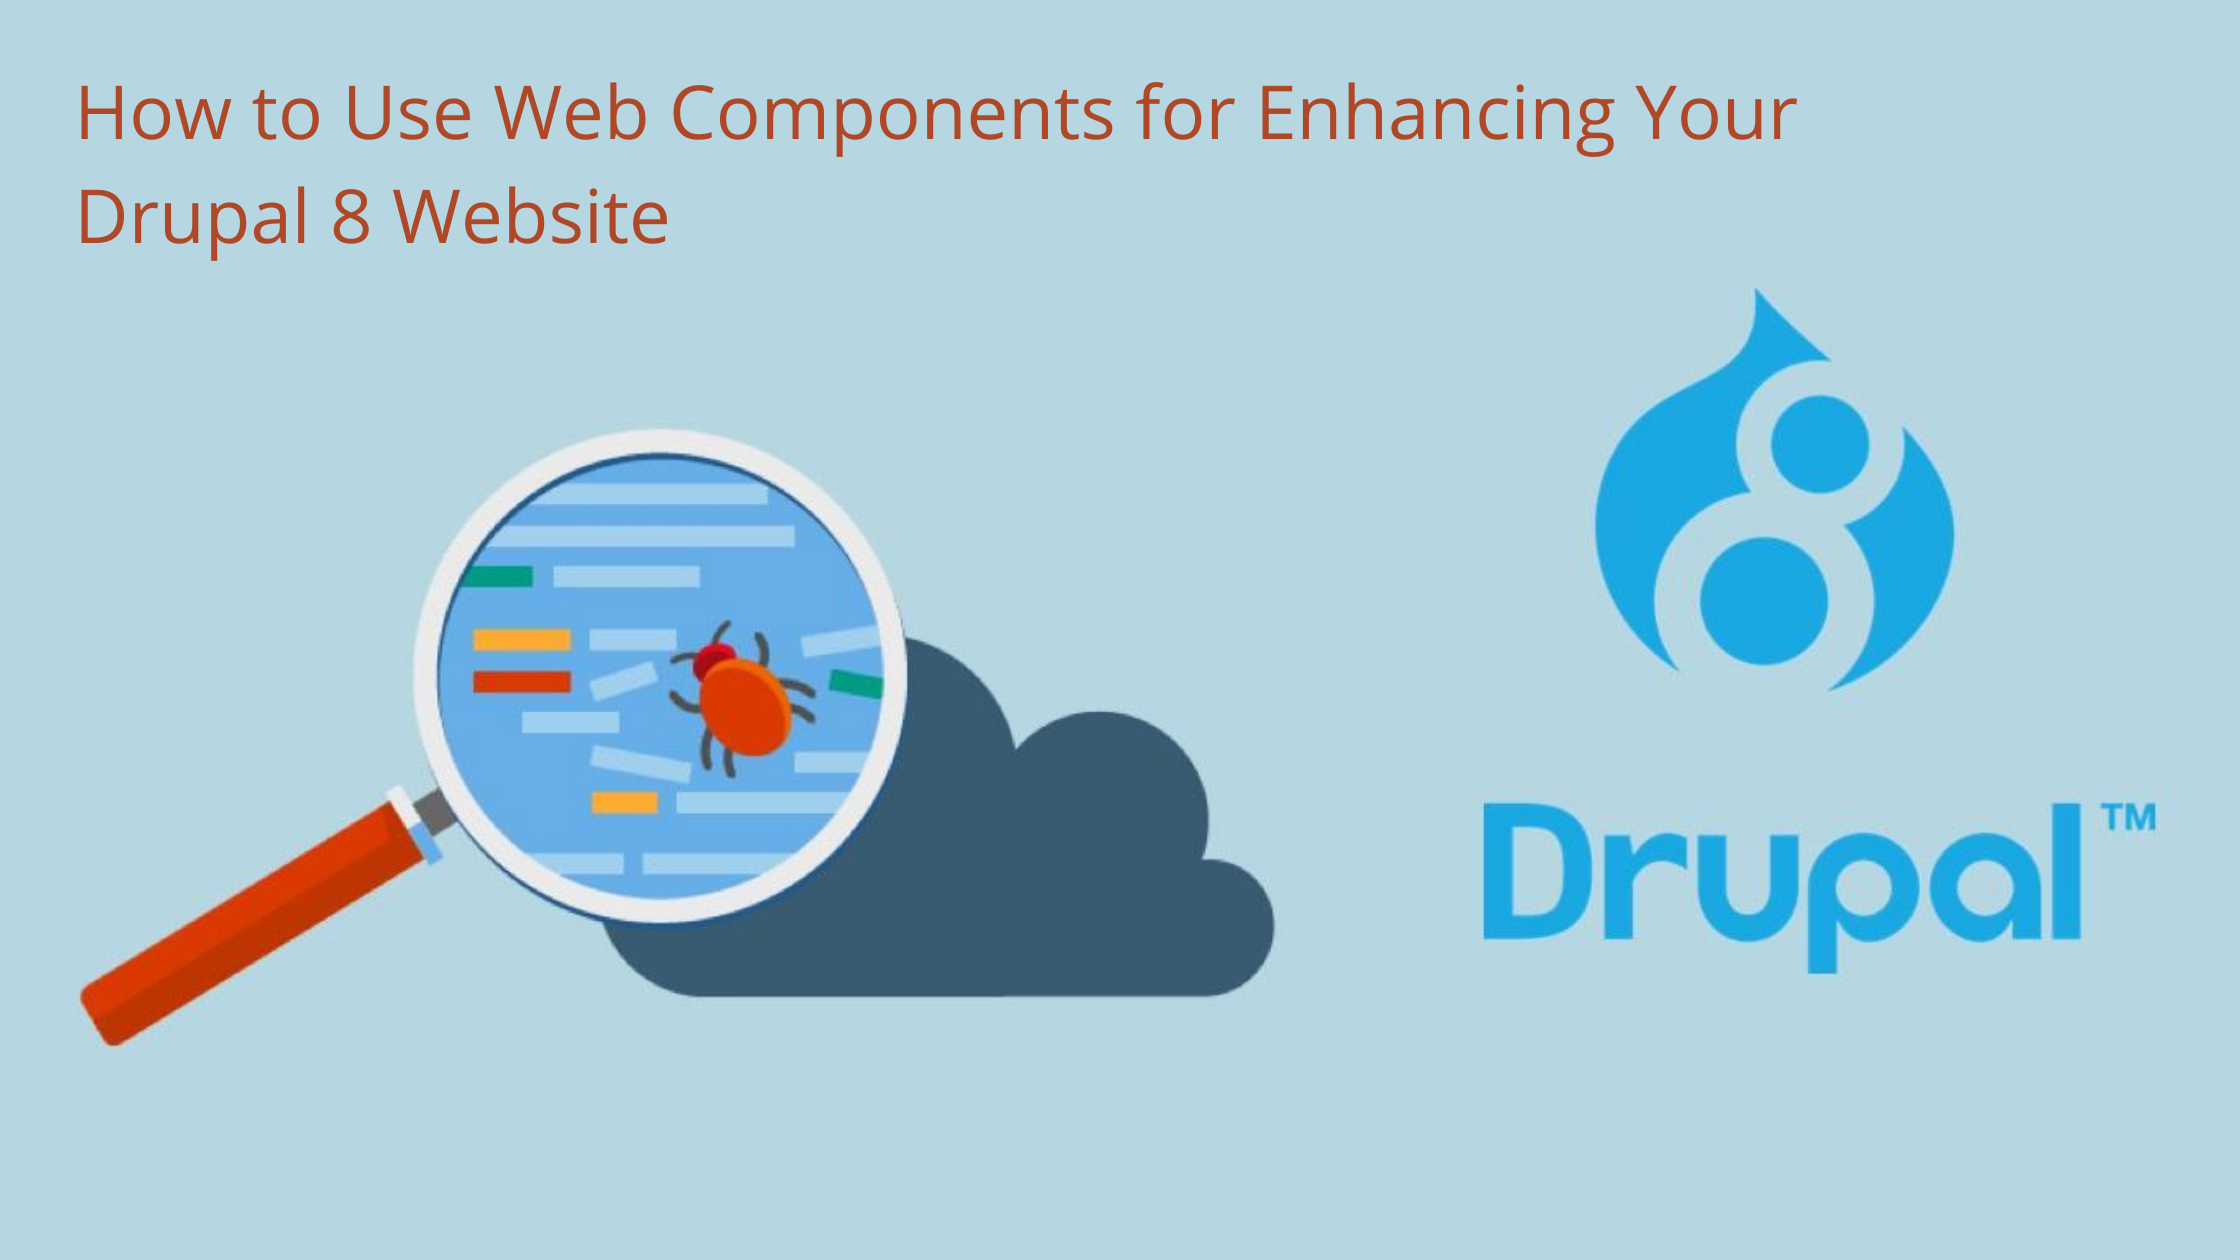 How to Use Web Components for Enhancing Your Drupal 8 Website